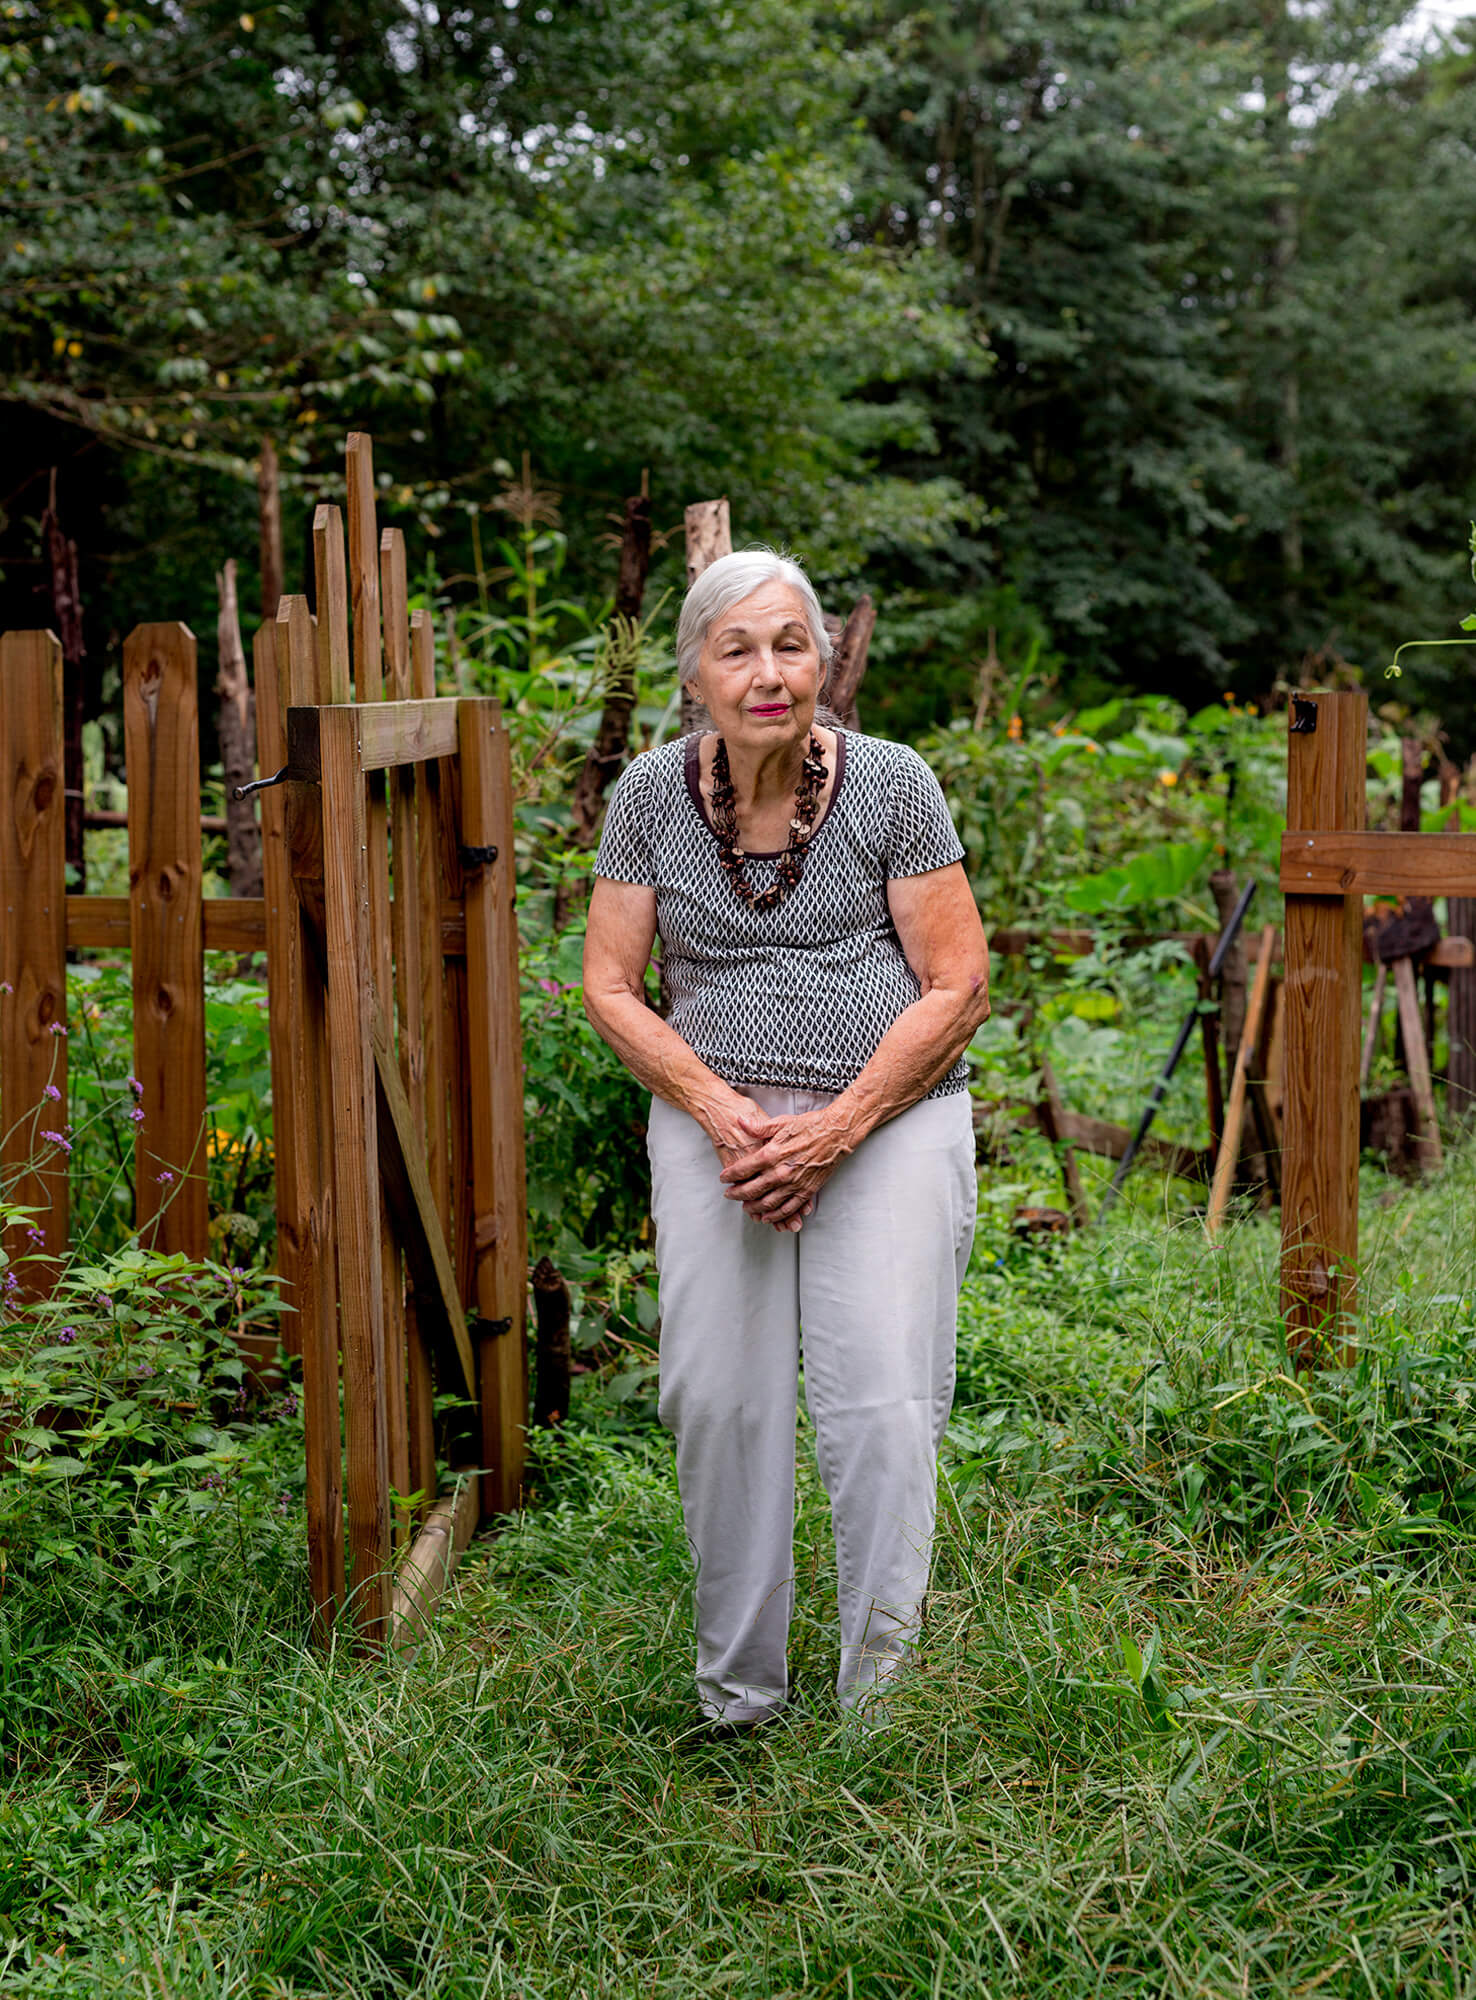 """Friends of Refugees Founder Pat Maddox — aka """"St. Pat of Clarkistan"""" —at the Forty Oaks Nature Preserve, just next to her property in Clarkston."""